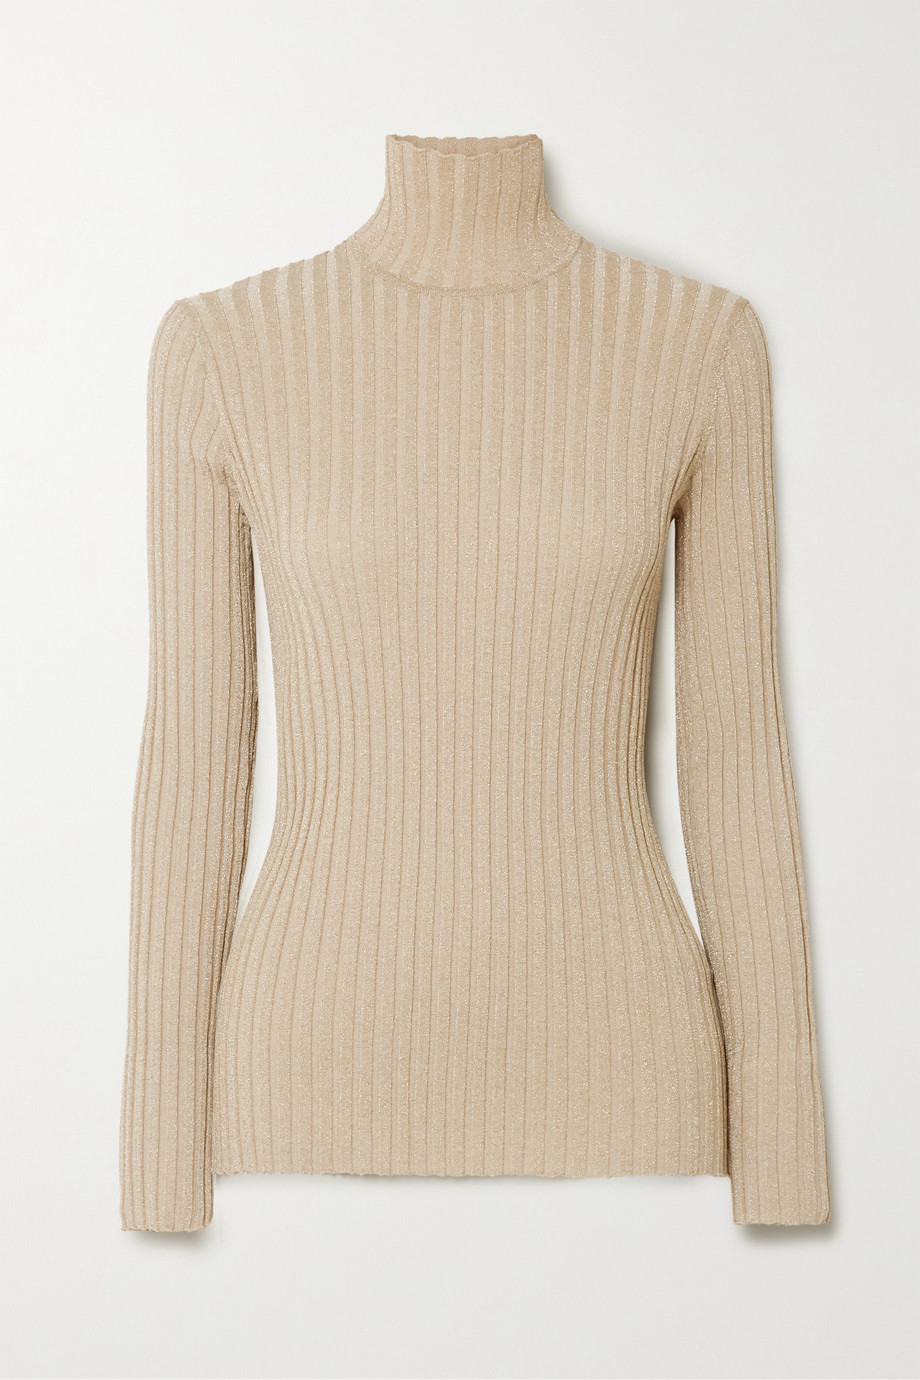 Victoria, Victoria Beckham Metallic ribbed-knit turtleneck sweater